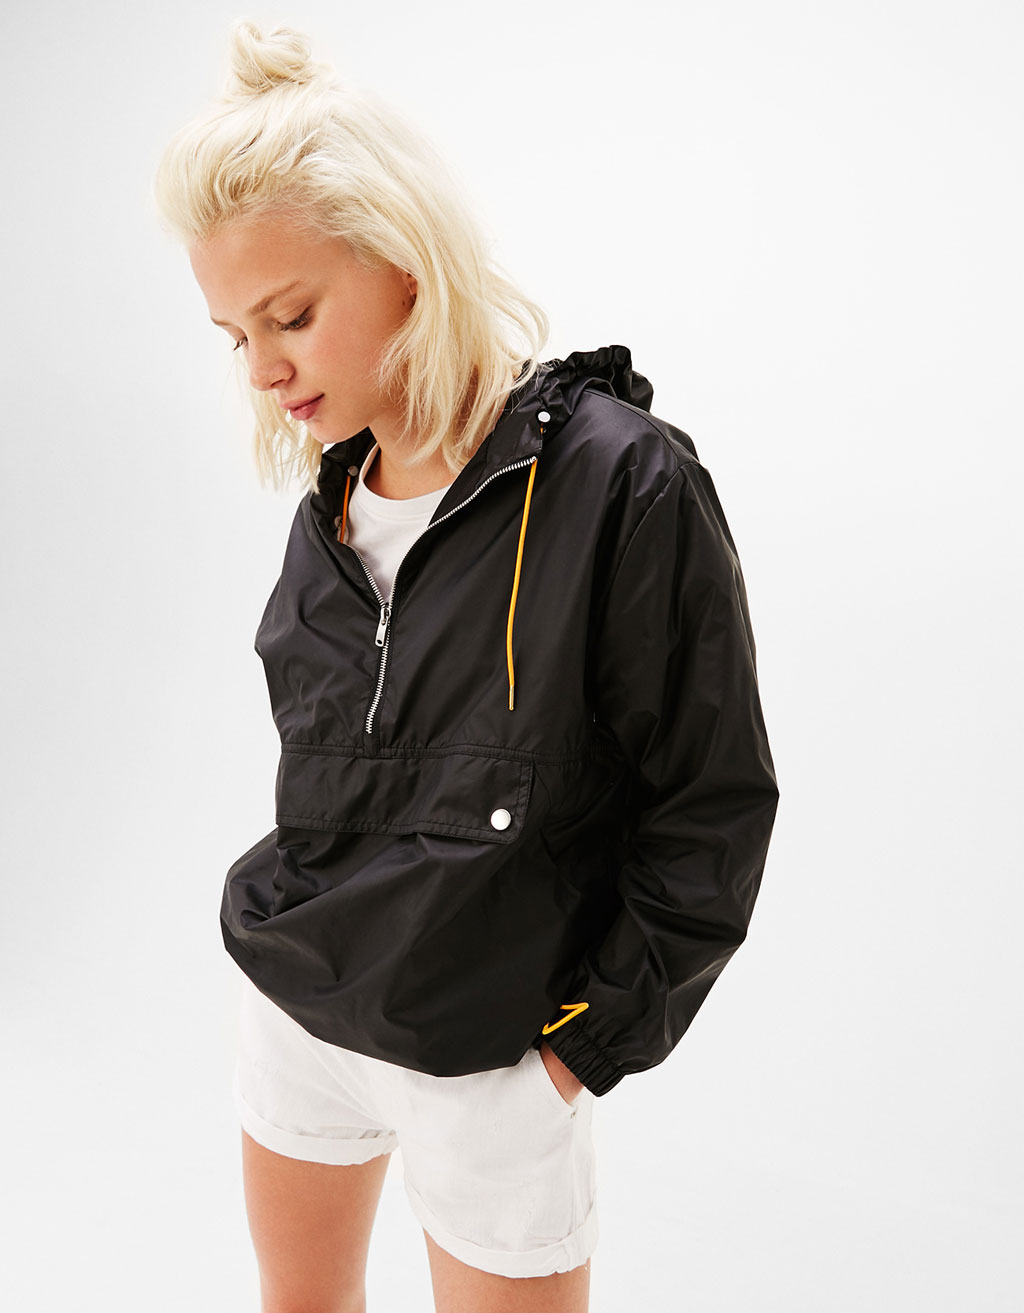 Hooded jacket with nylon pouch pocket